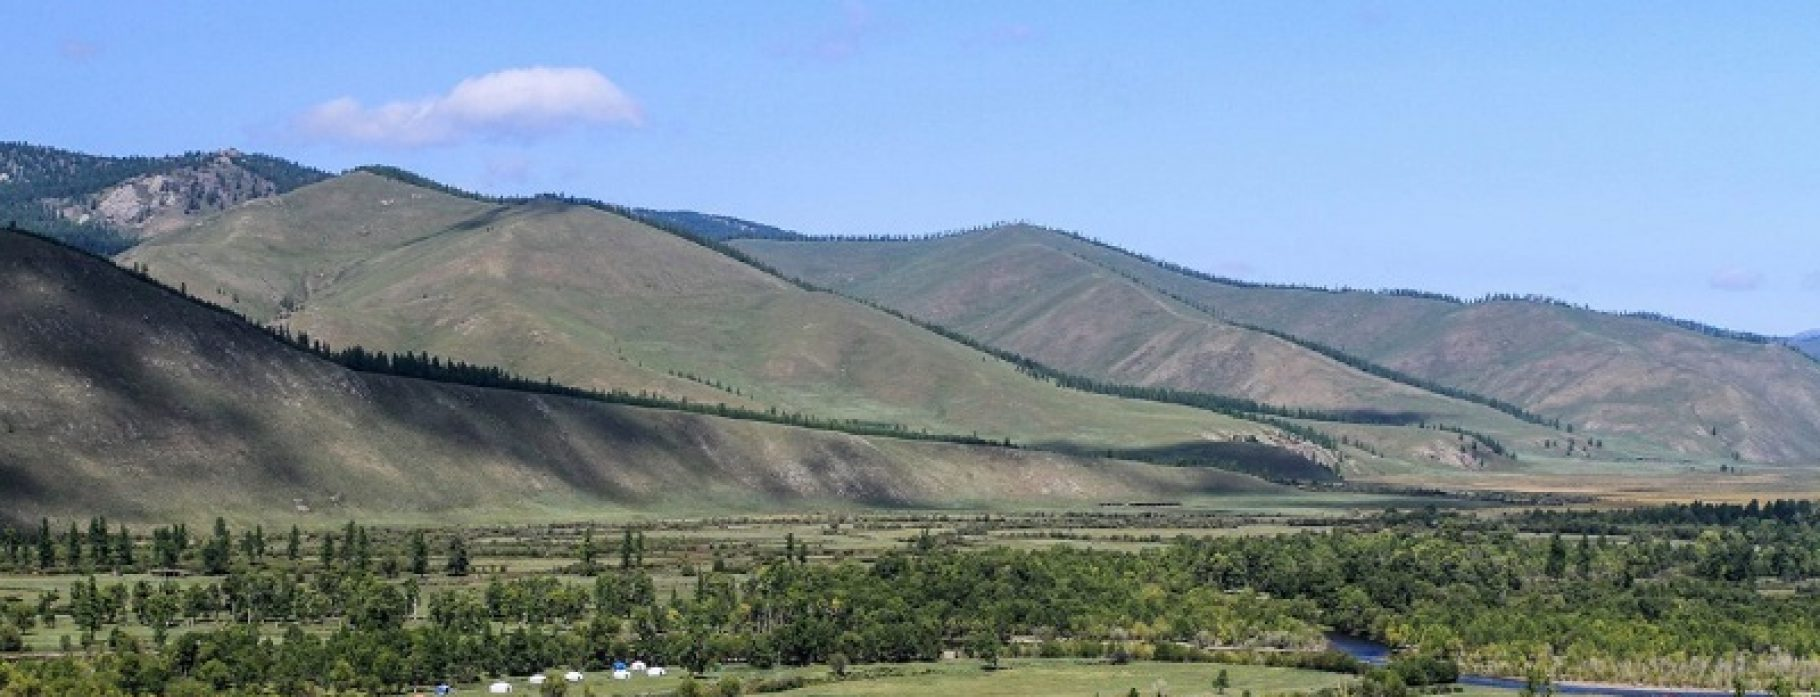 INTRIQ FINESSE -  9 DAYS MONGOLIA DESERTS & MEADOWS: A NOMADIC IMMERSION